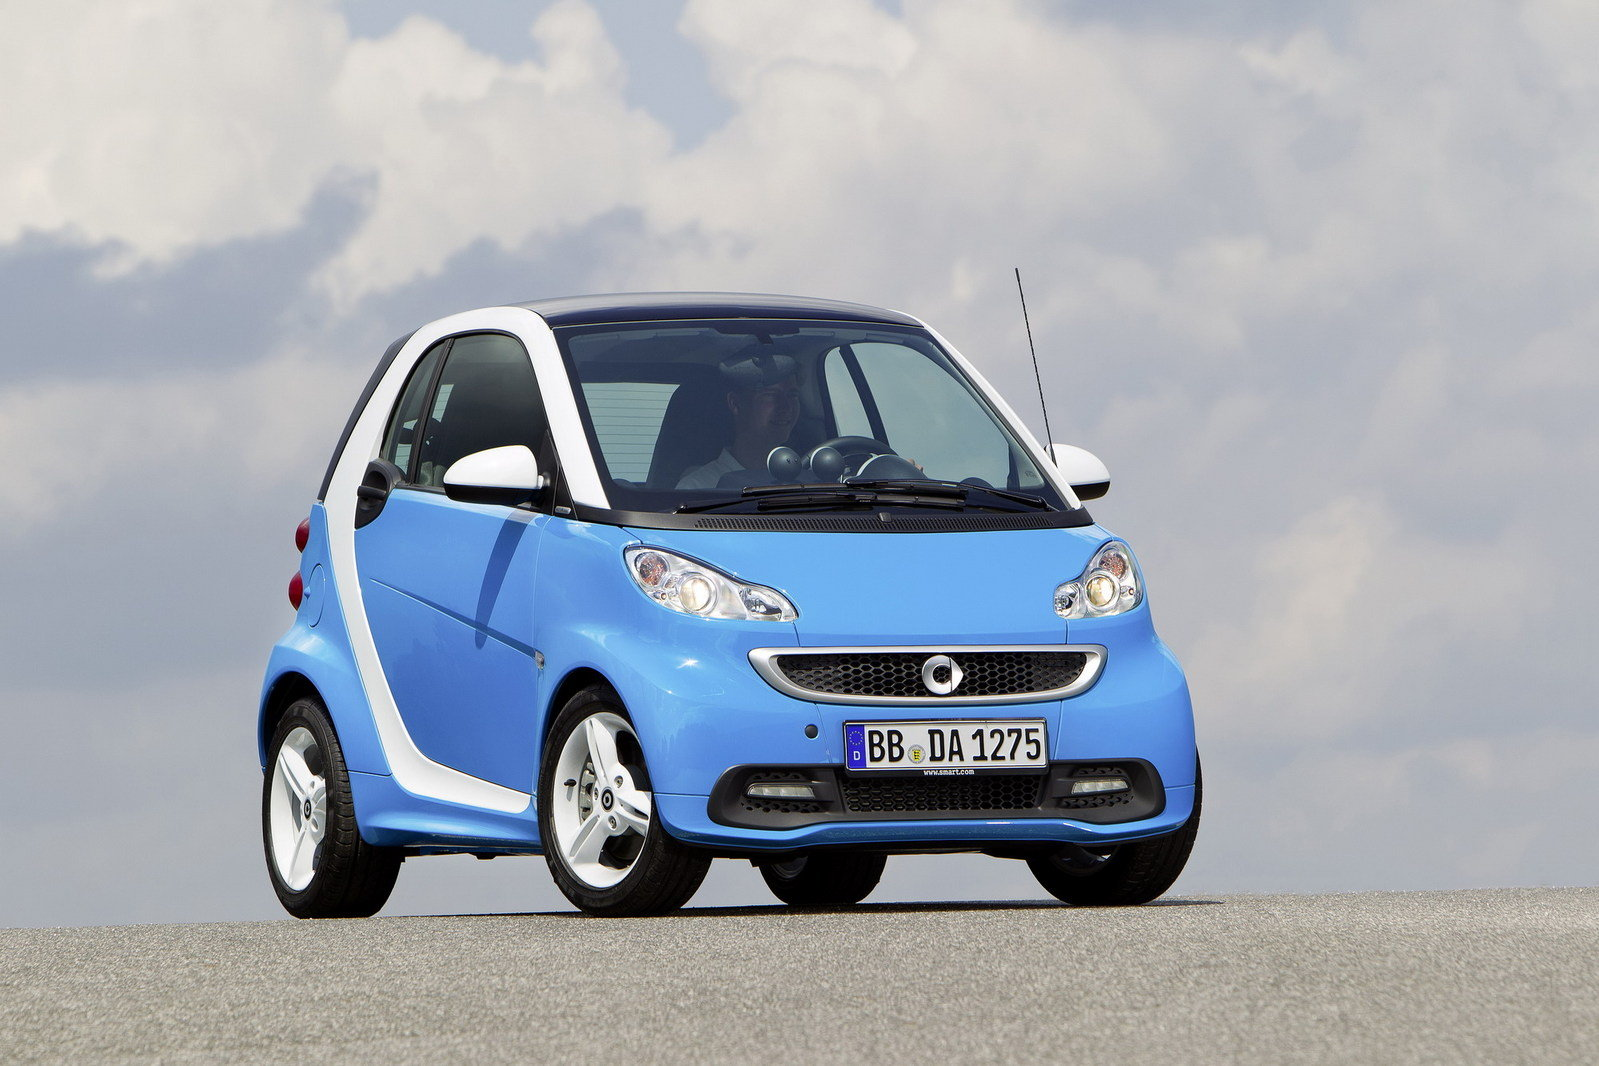 http://pictures.topspeed.com/IMG/crop/201206/smart-fortwo-iceshin-1_1600x0w.jpg